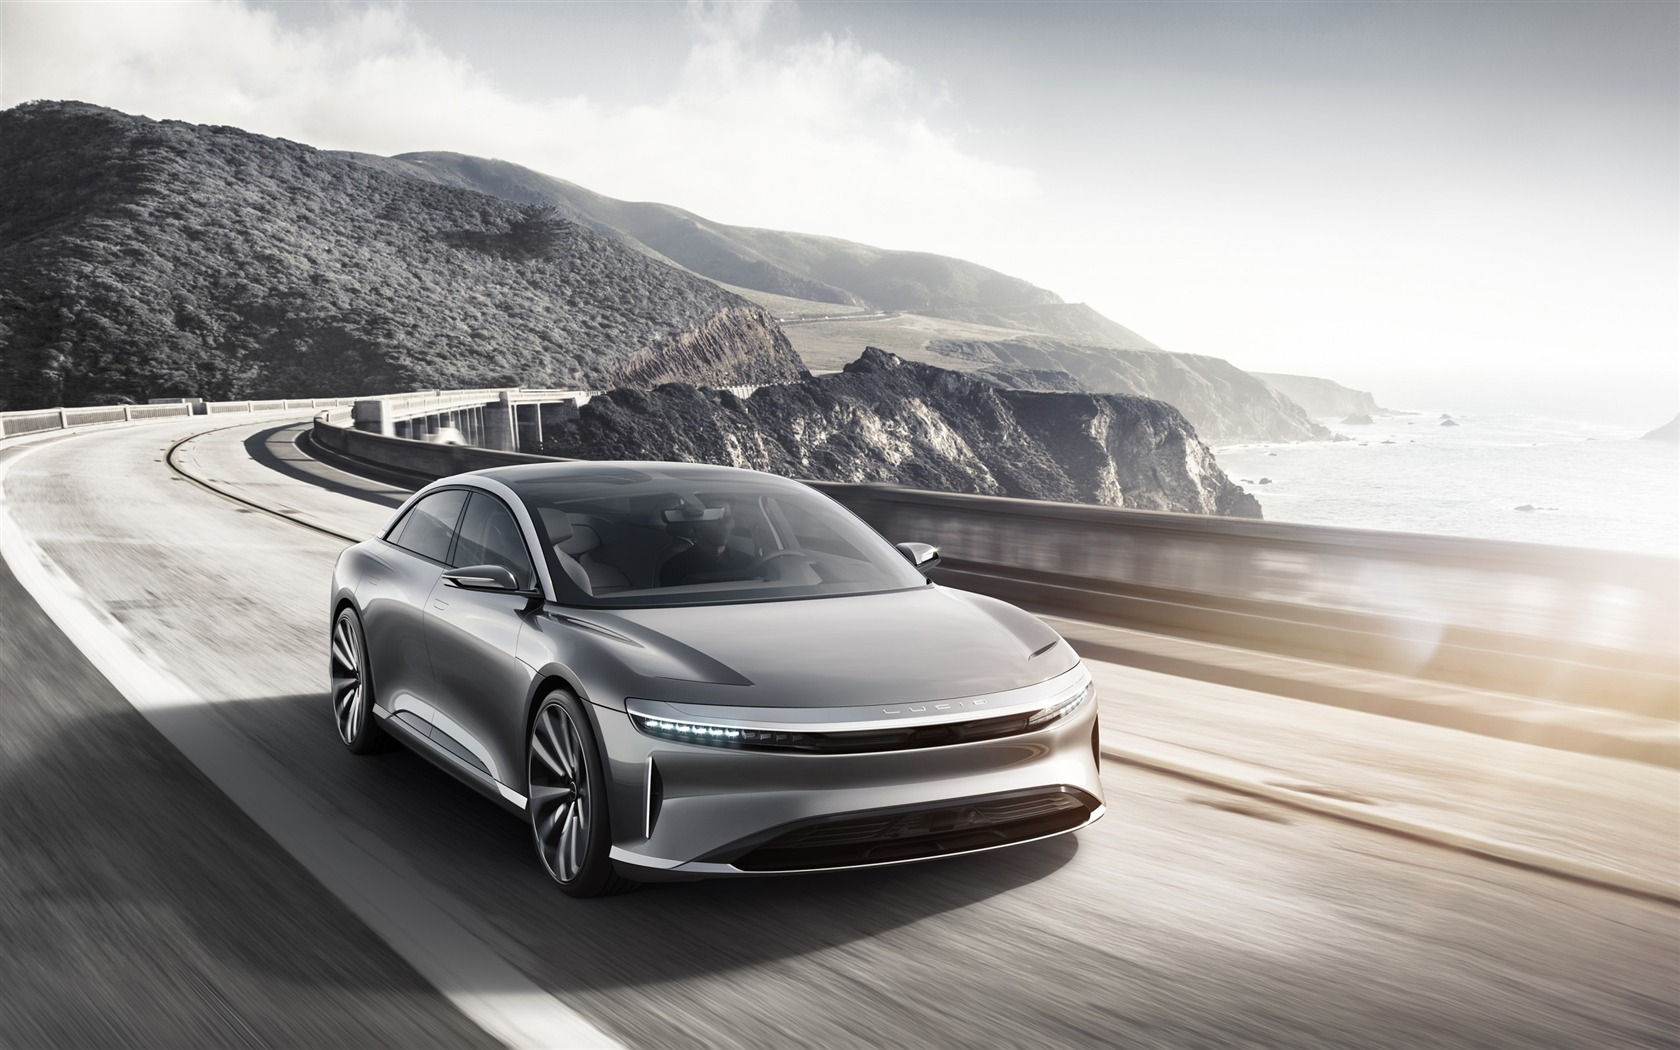 Lucid air luxury electric car-Brand Car HD Wallpaper - 1680x1050 wallpaper download